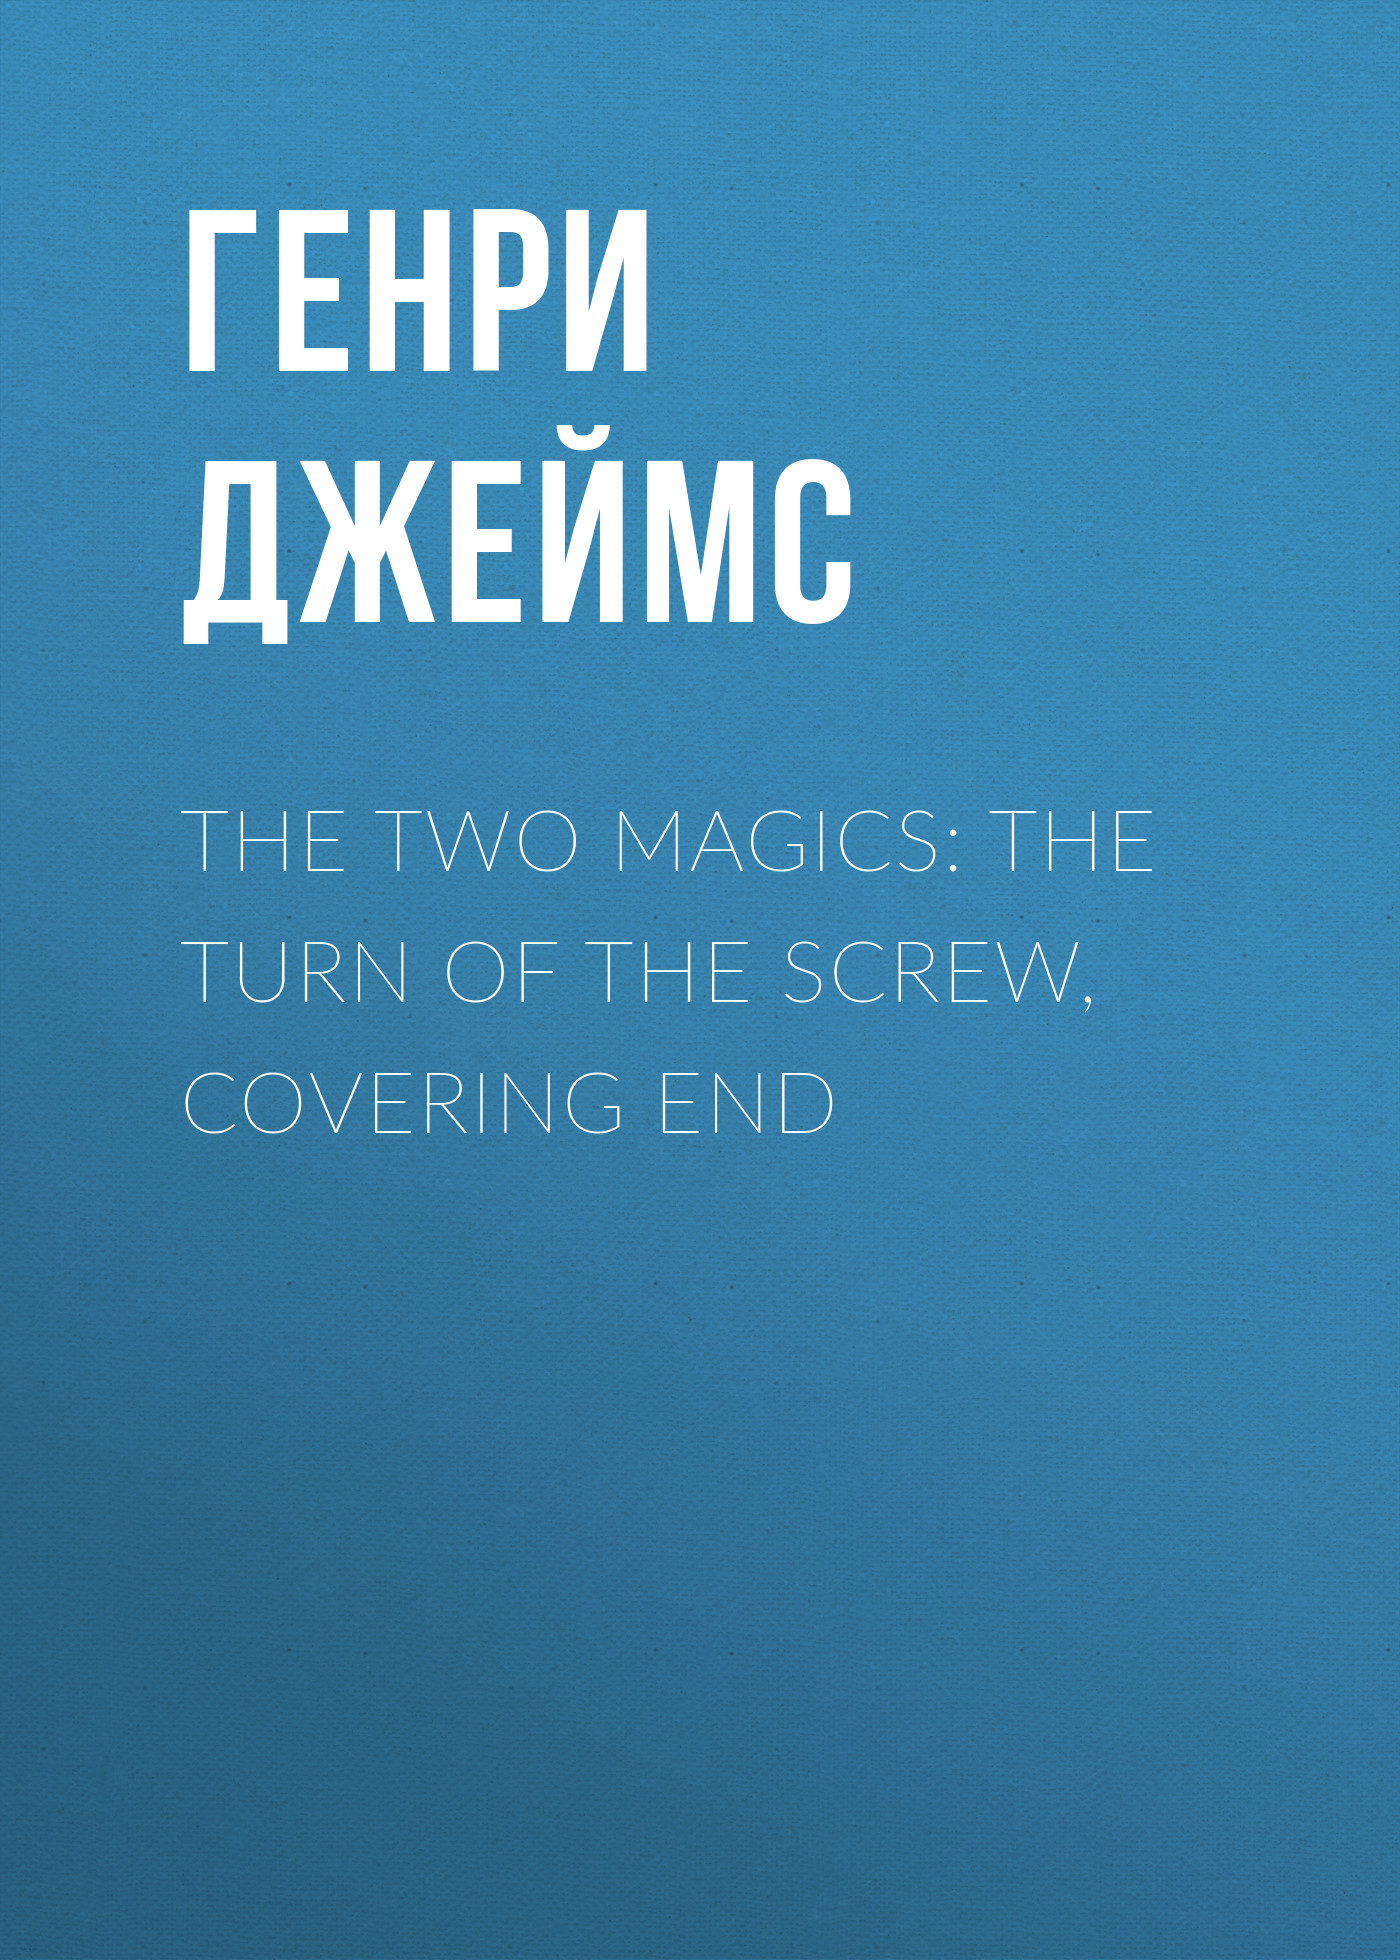 Генри Джеймс The Two Magics: The Turn of the Screw, Covering End